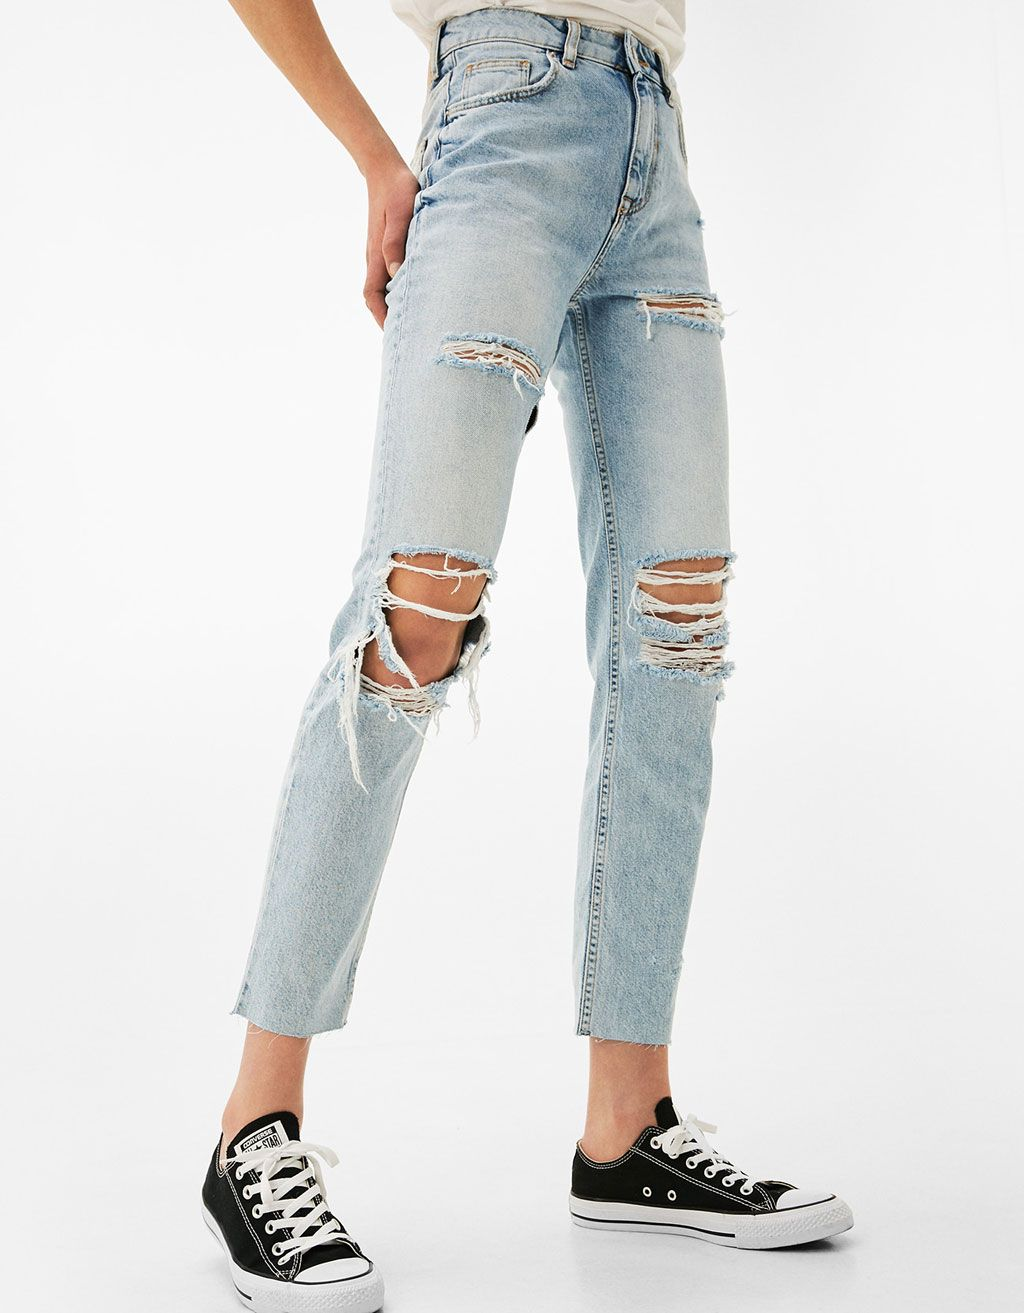 c12bb00615 Mom Fit jeans with ripped knees - Jeans - Bershka Israel